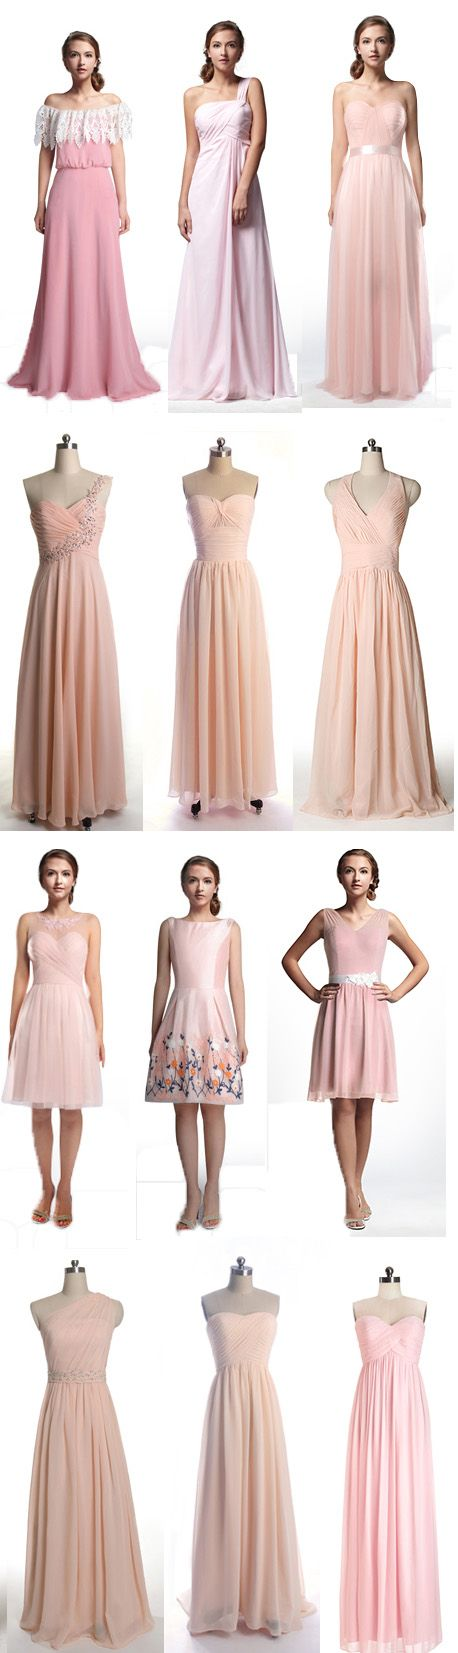 Inexpensive & affordable pink, blush, peach bridesmaid dresses from http://www.tulleandchantilly.com/pink-bridesmaid-dress-c-20_26/